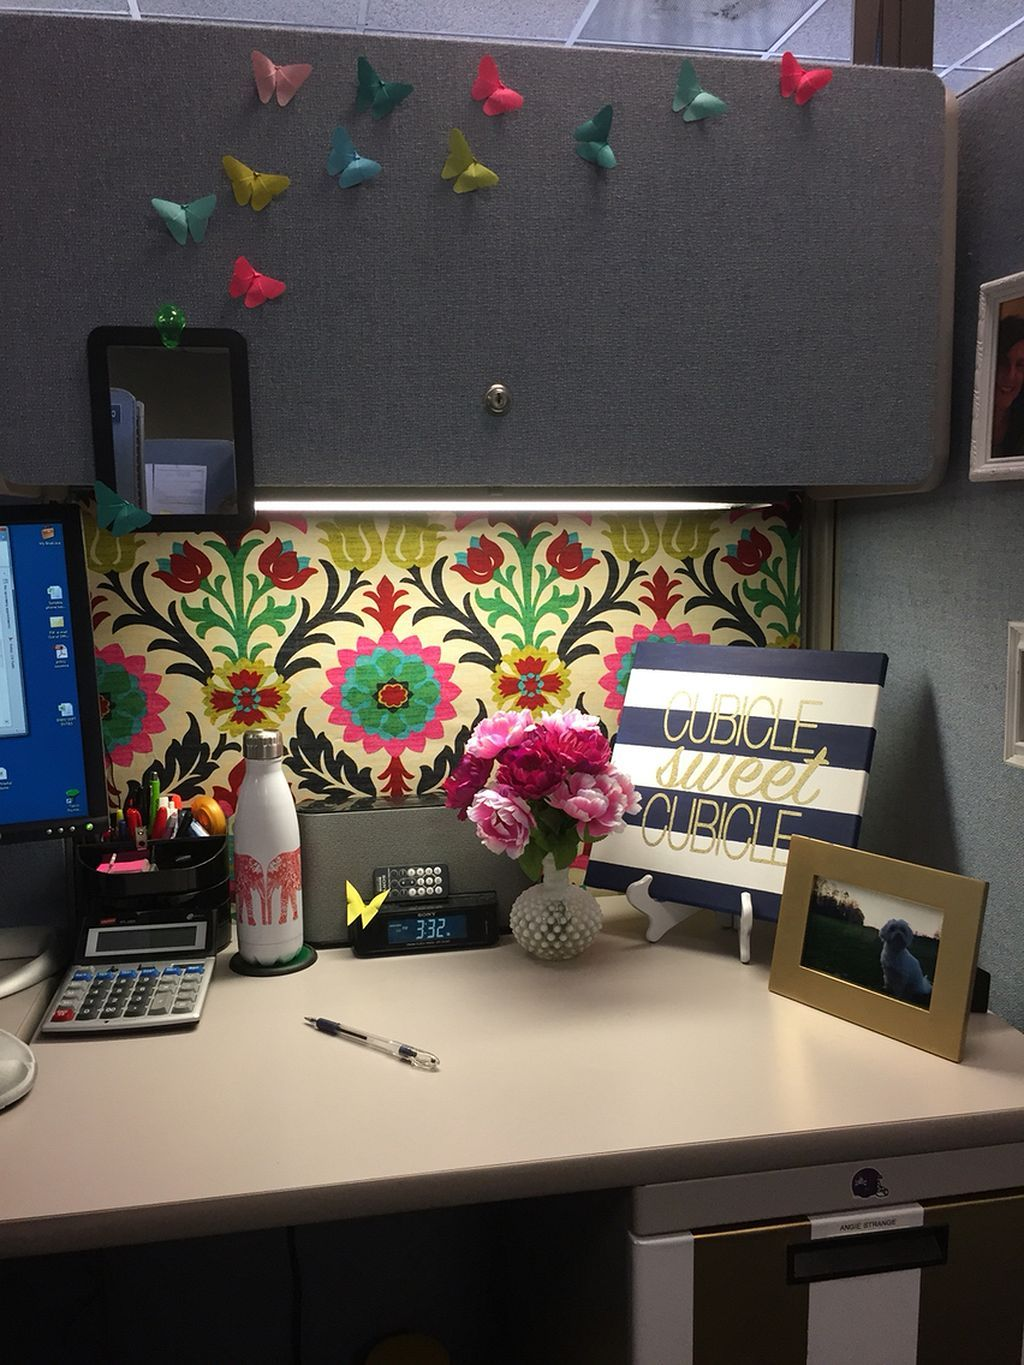 Great 50 Cubicle Workspace Decorating Inspiration Https Hgmagz Com 50 Cubicle Workspace Decorating Cubicle Decor Office Work Cubicle Decor Work Space Decor